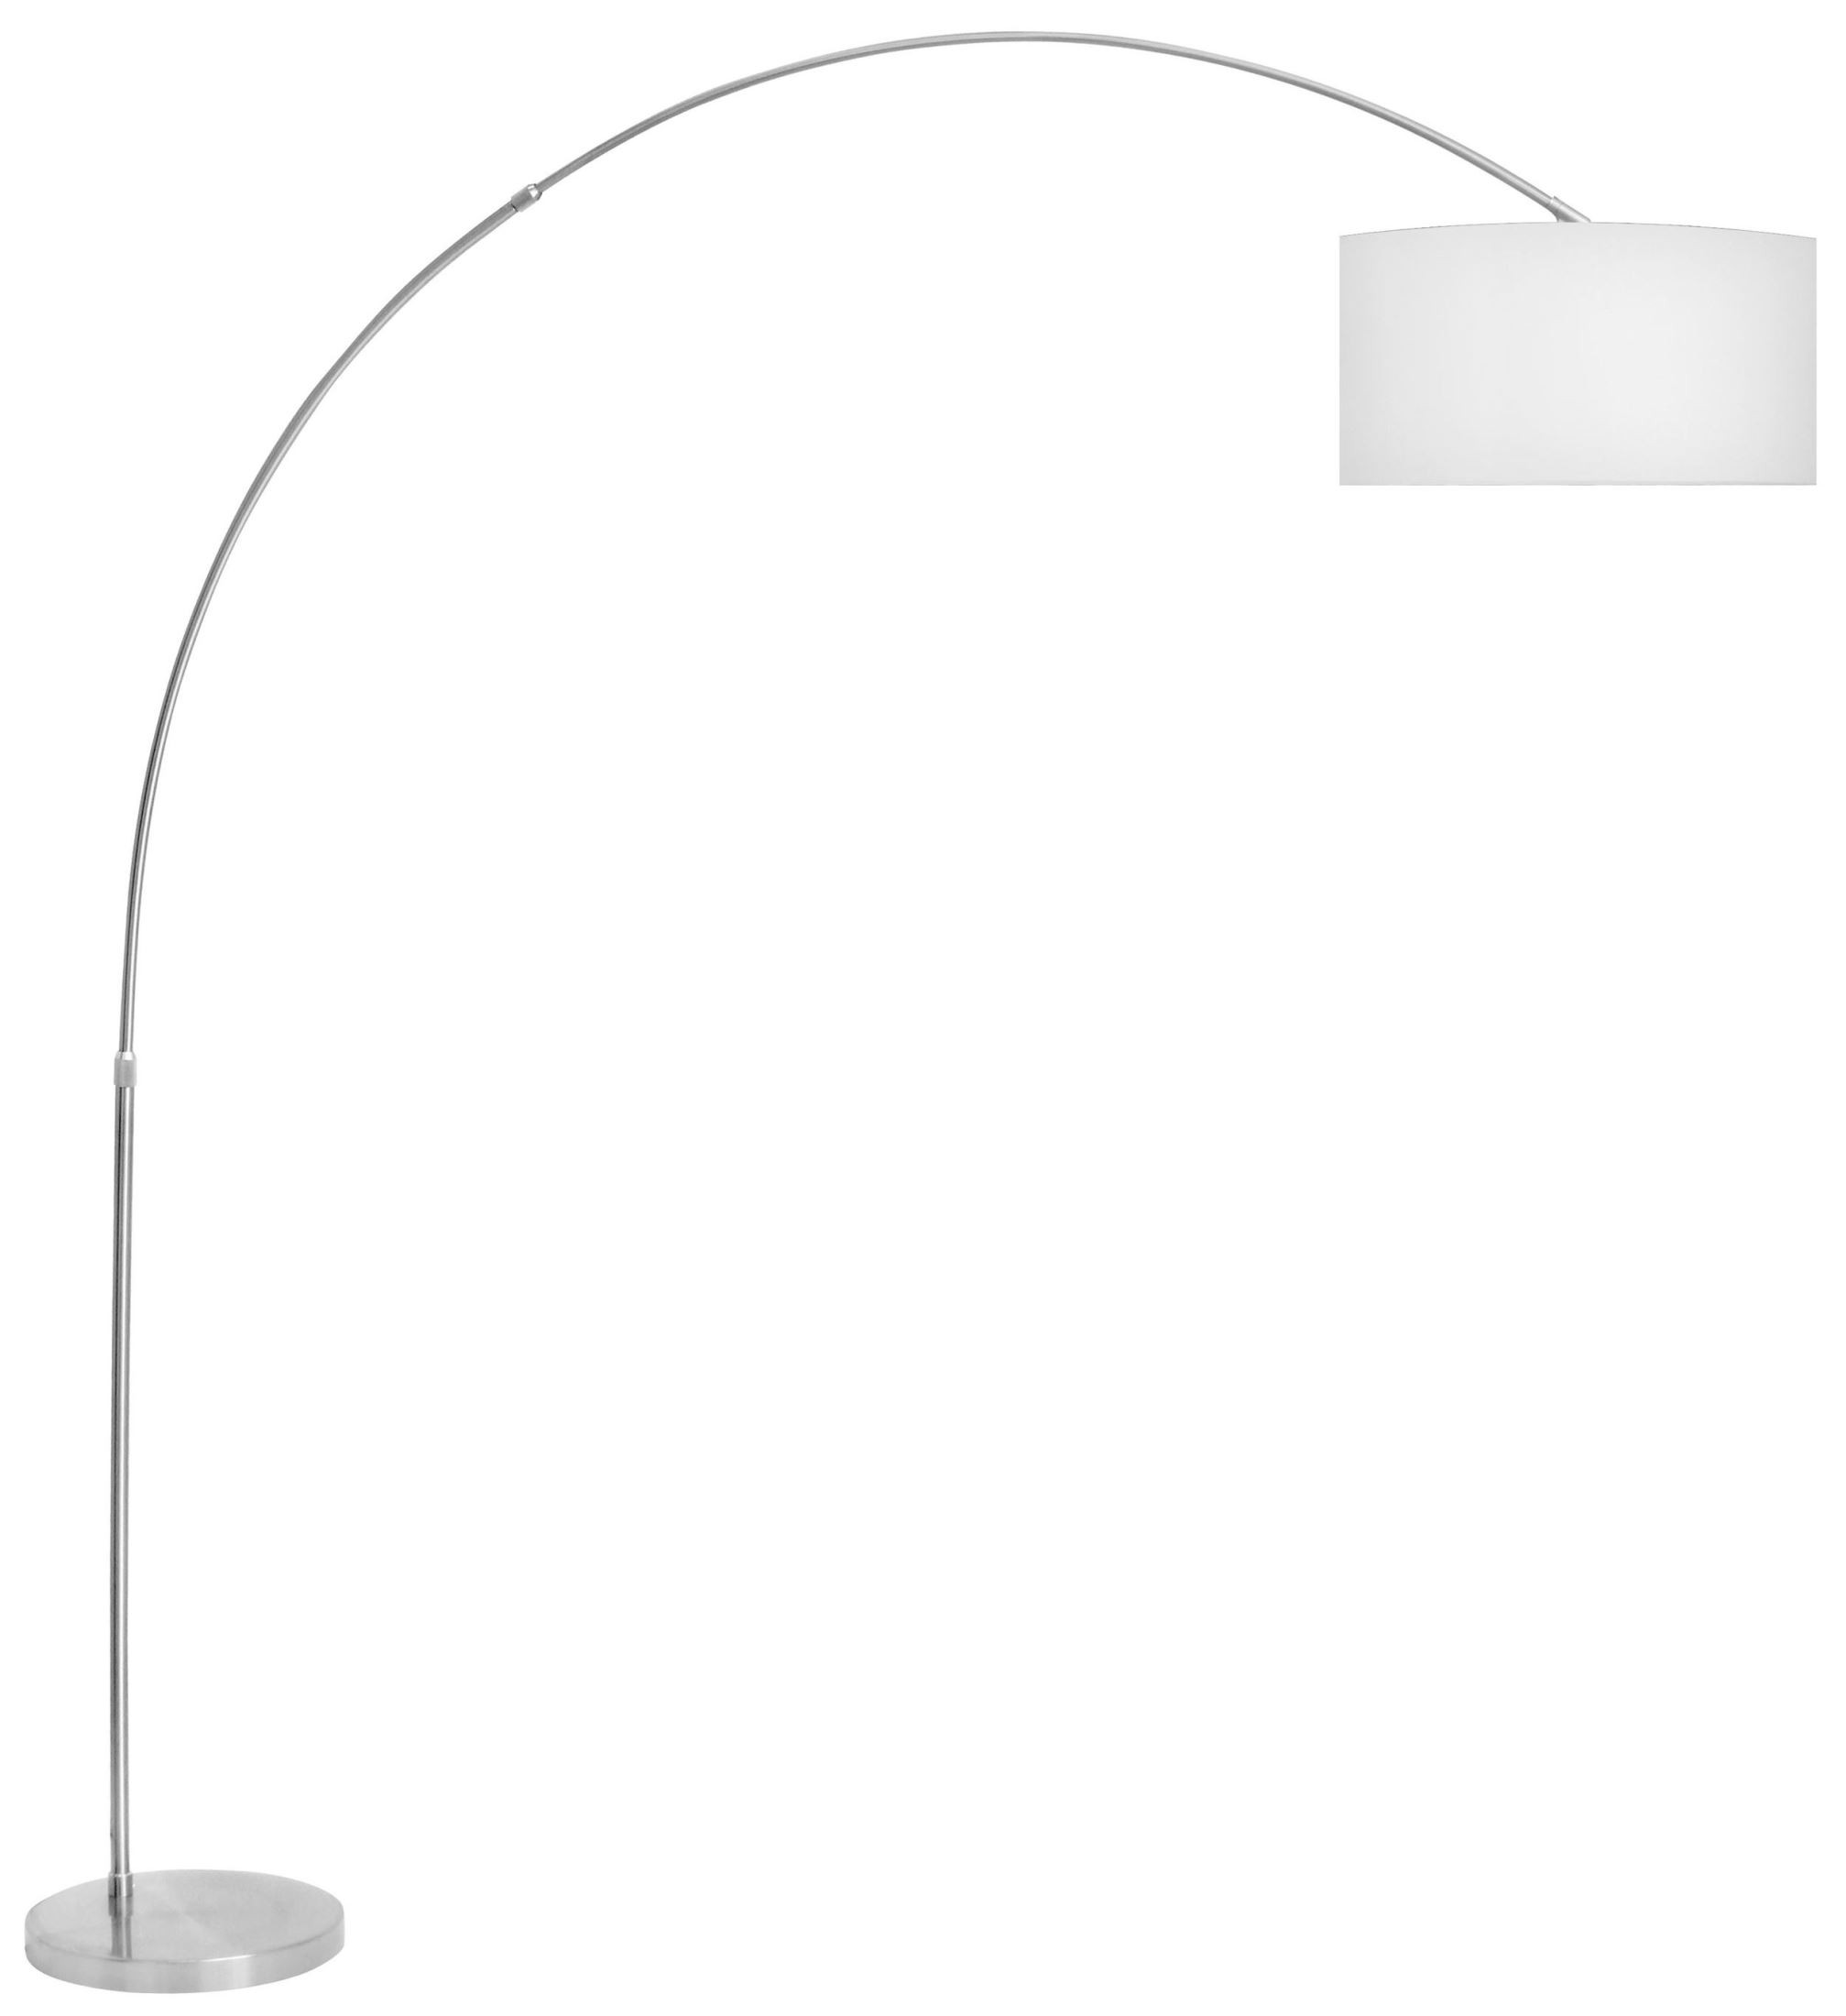 Salon white floor lamp from lumisource ls l salflr w for Lumisource salon floor lamp in white